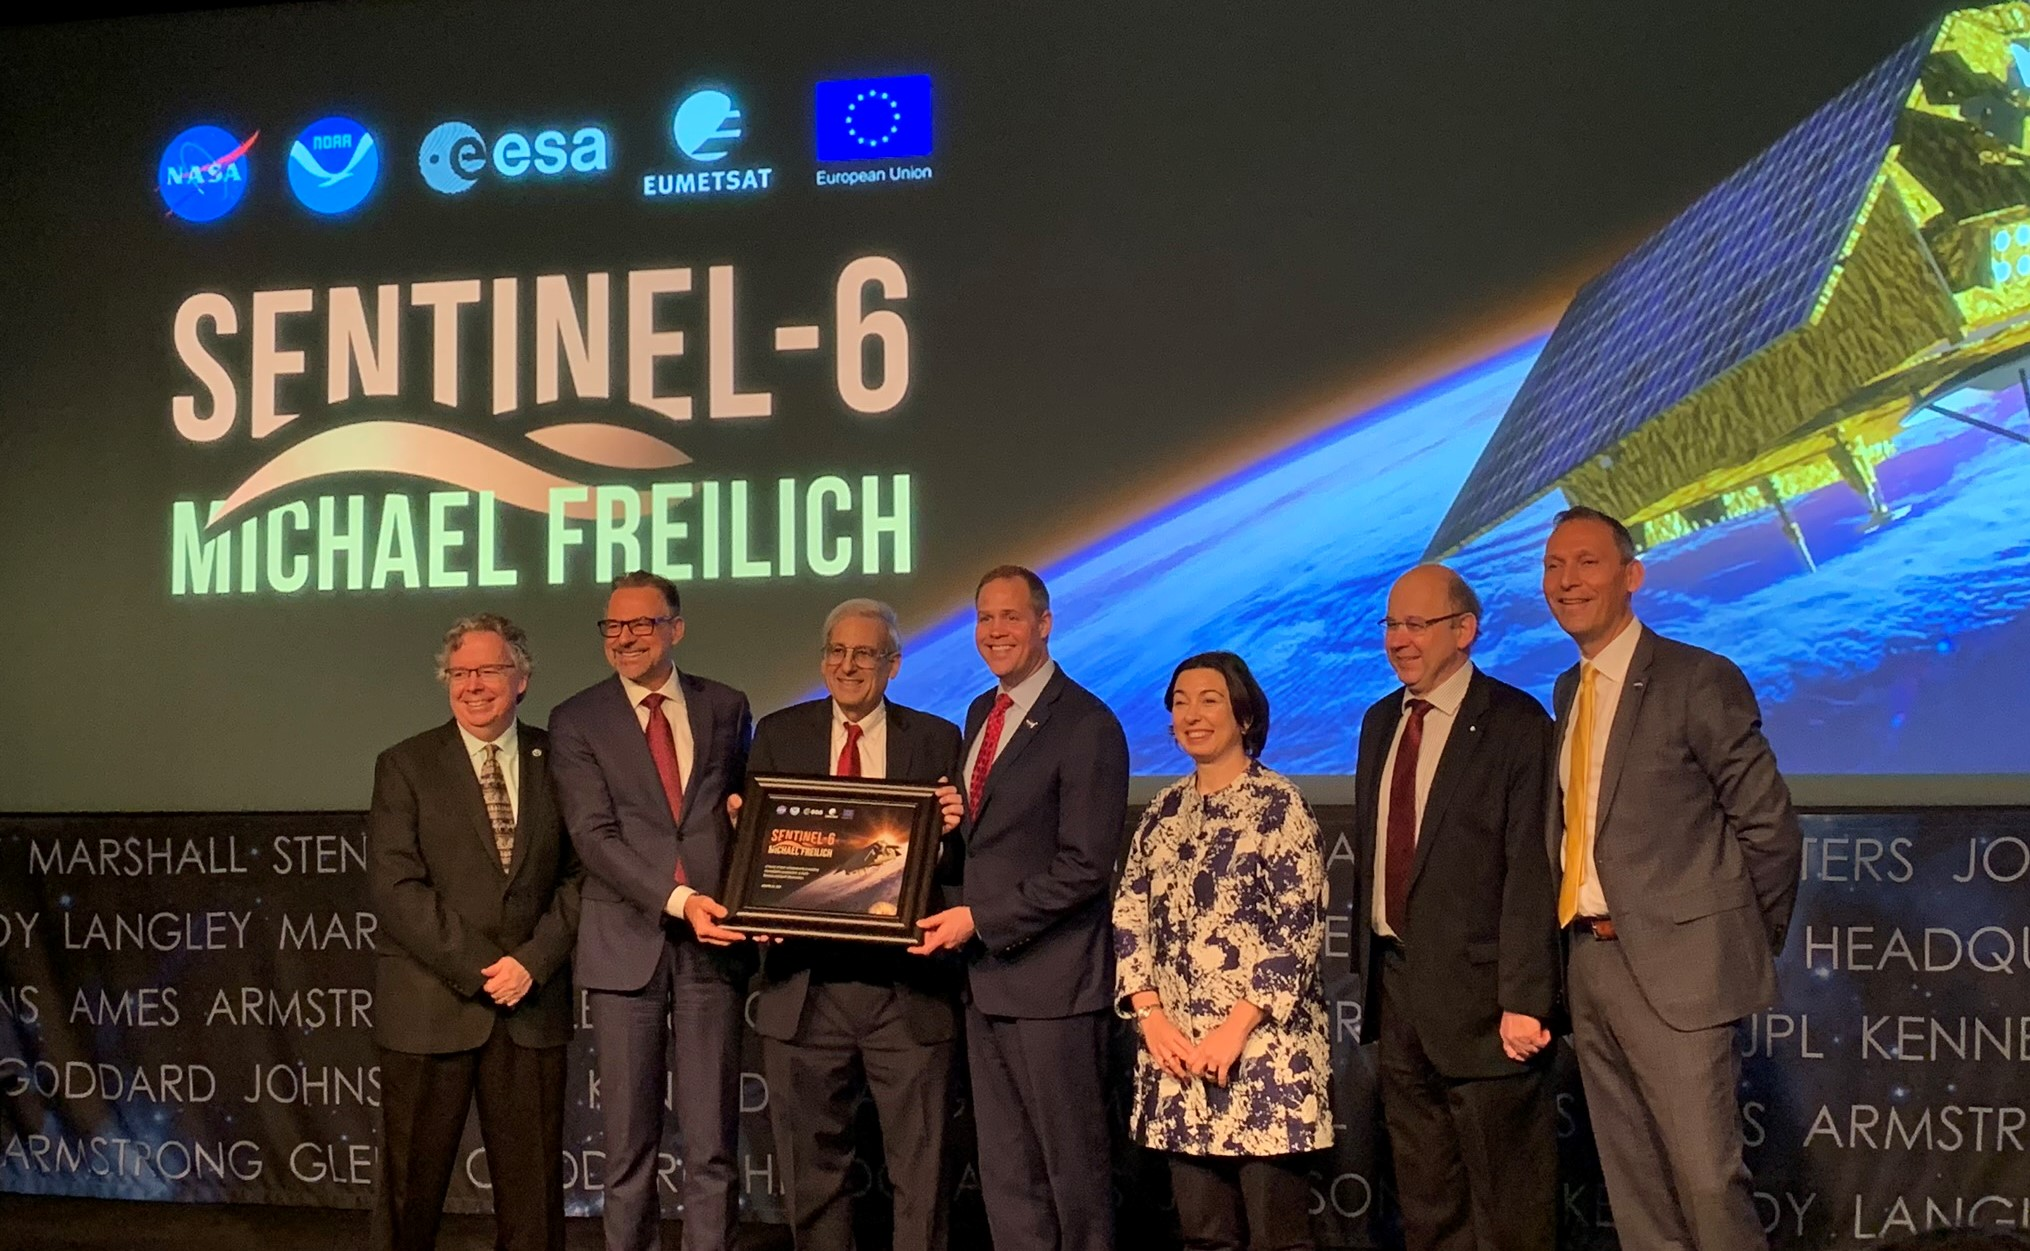 CNES pays tribute to Dr. Michael Freilich, former Director of NASA's Earth Science division